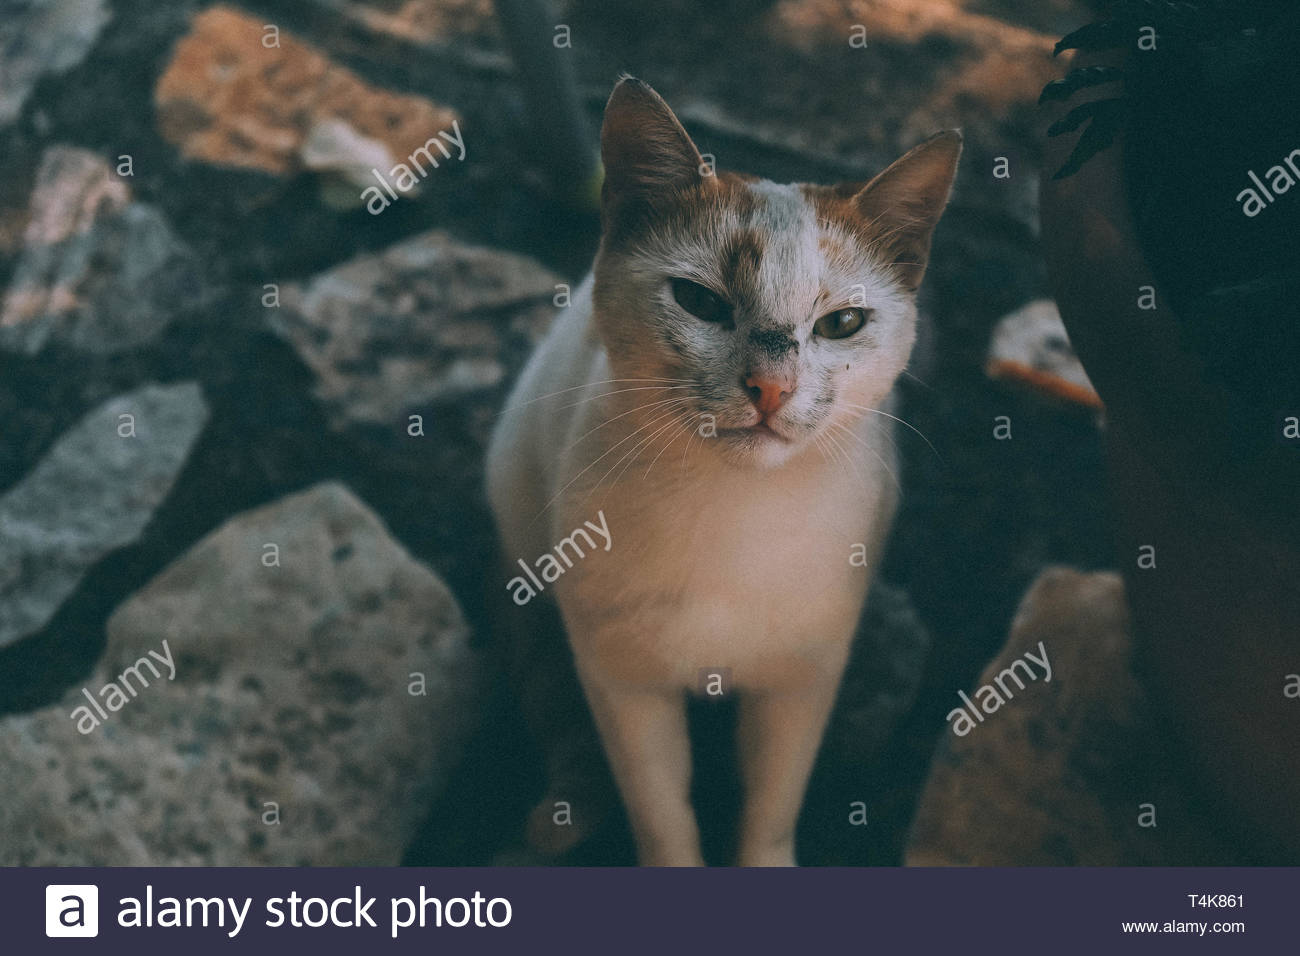 cat looking closely - Stock Image